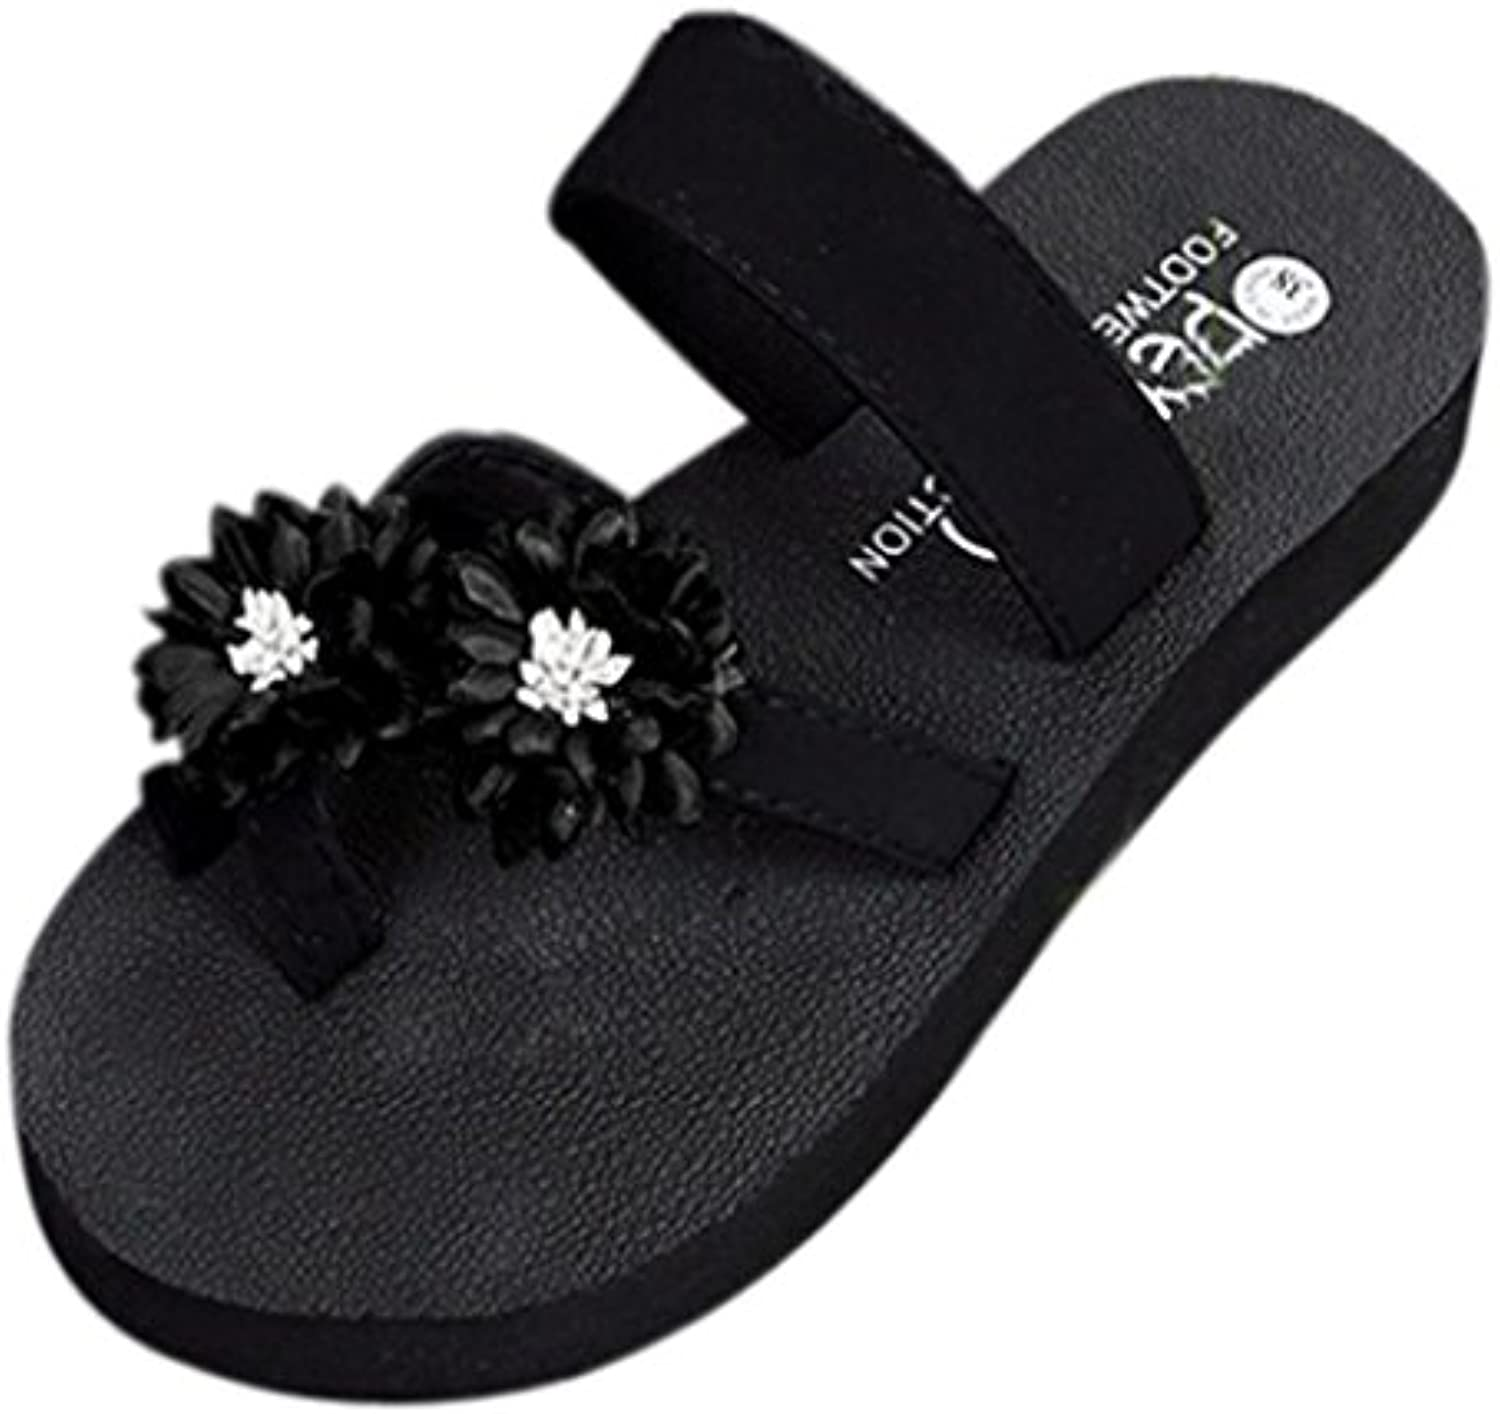 e61c384a1cd799 JYC Slippers Clearance Womens Ladies 29909 Platform Shoes Parent Wedge  Sandals Summer Beach Shoes Platform Bath Slippers Wedge Flip.